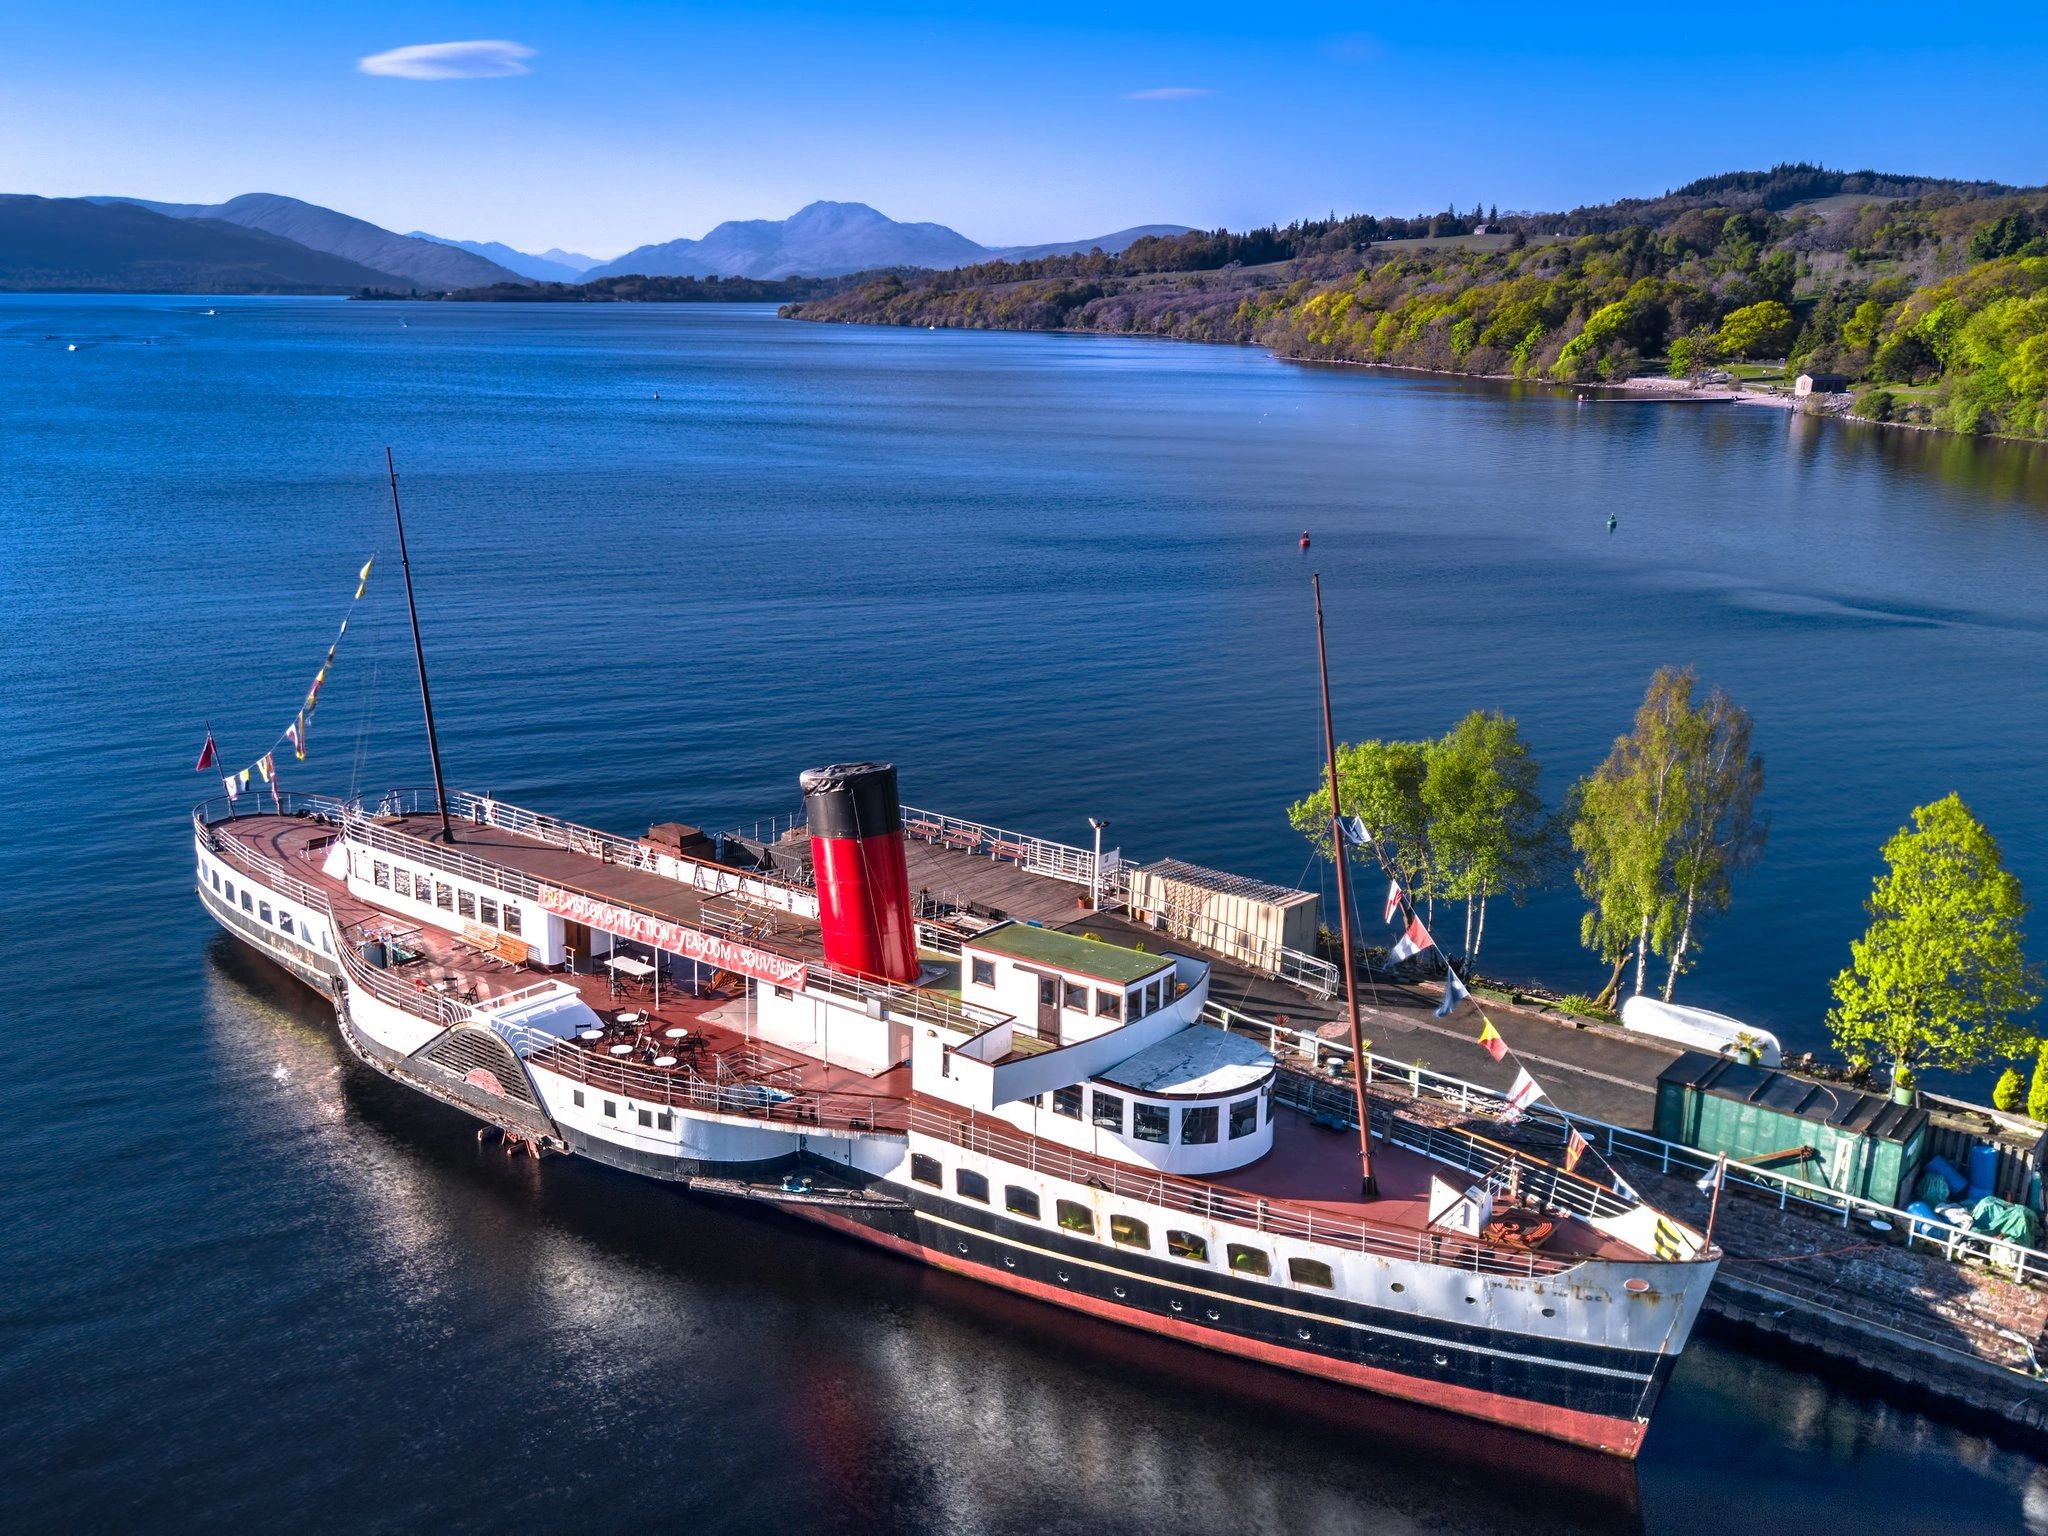 Maid of the Loch at berth on Loch Lomond, near Balloch. Courtesy: Loch Lomond Steamship Company